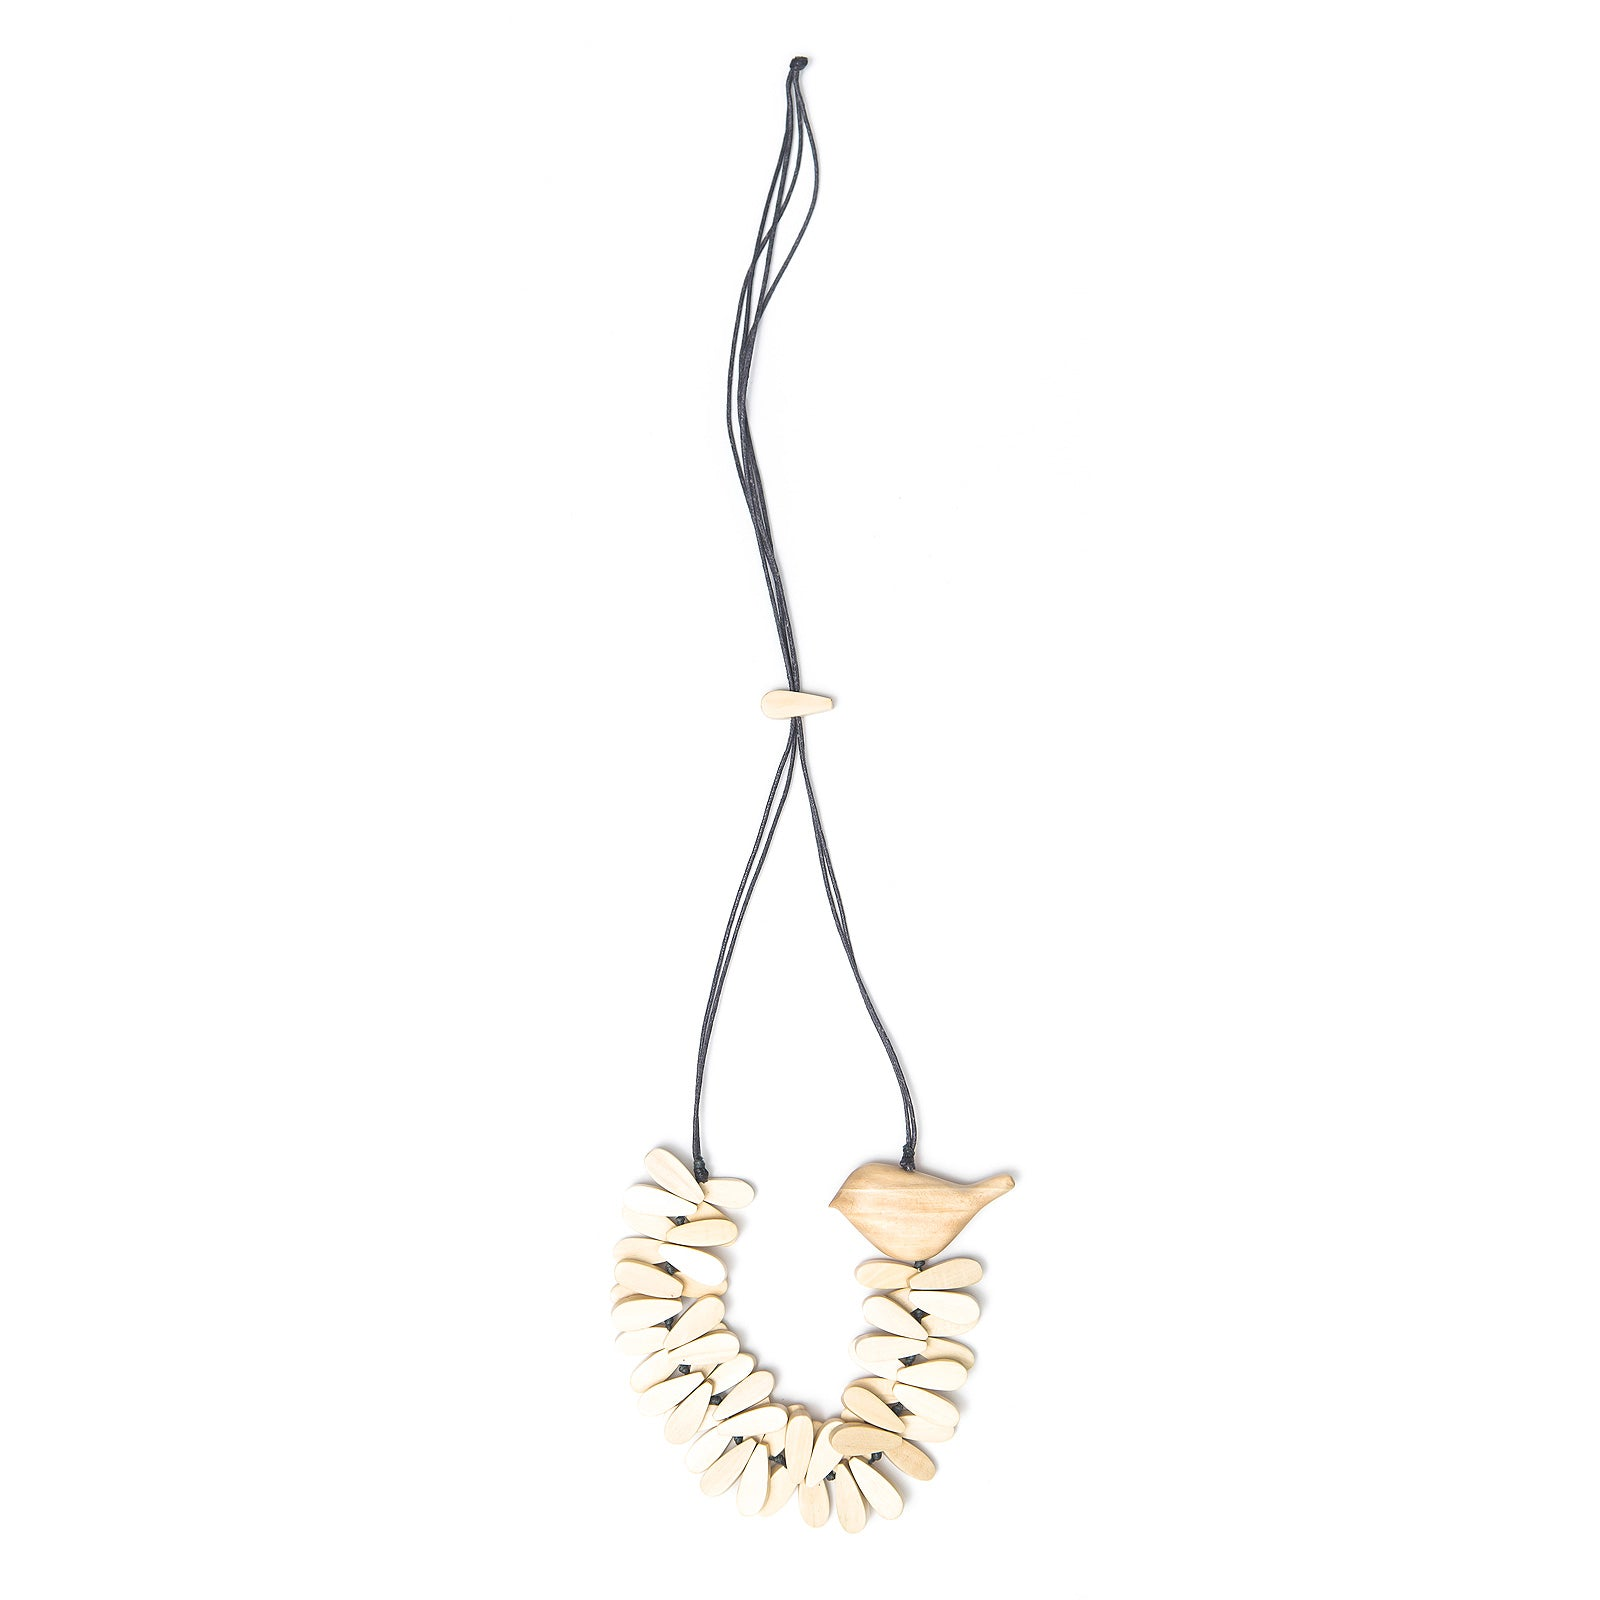 Well-Rounded Birdie necklace